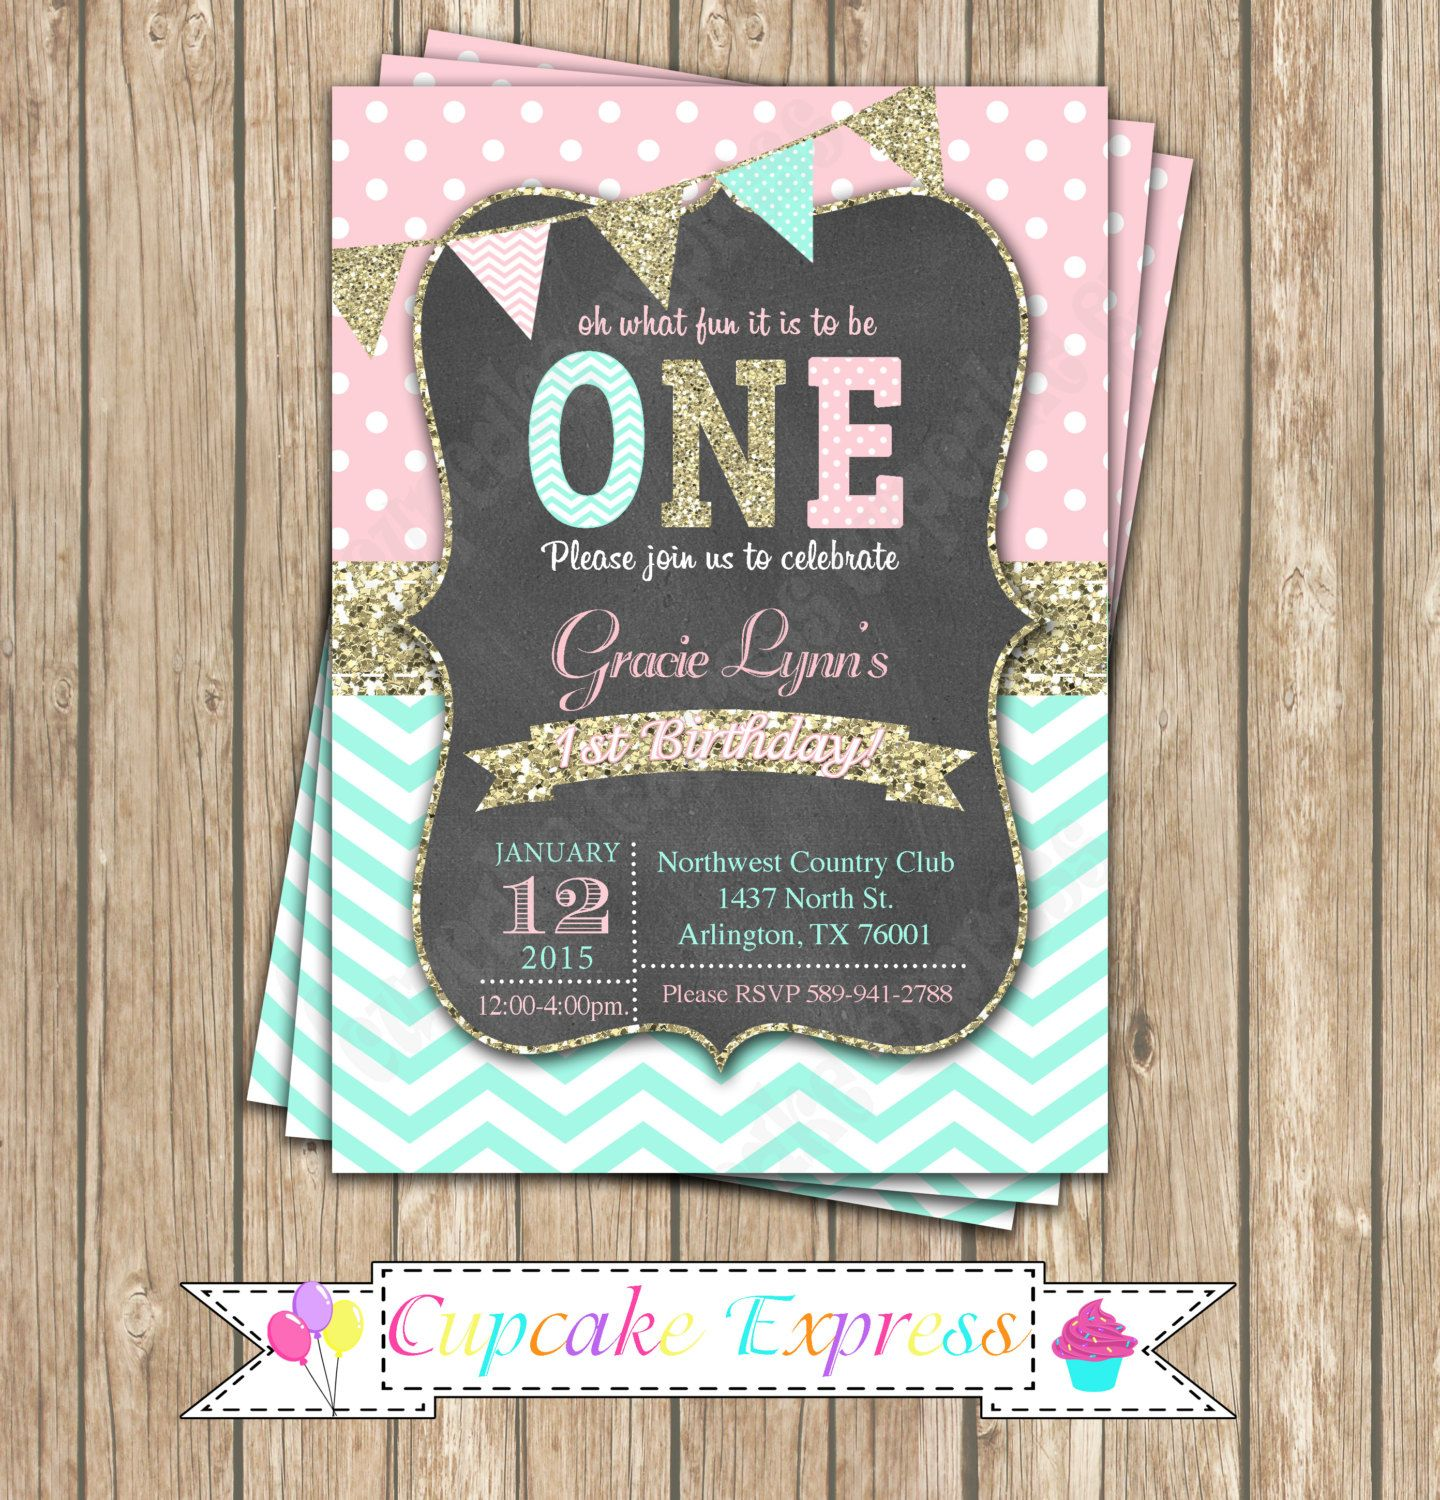 First Birthday Party In A Box In Gold Mint And Pink: Girls First Birthday Invitation, Pink Mint Gold Invitation